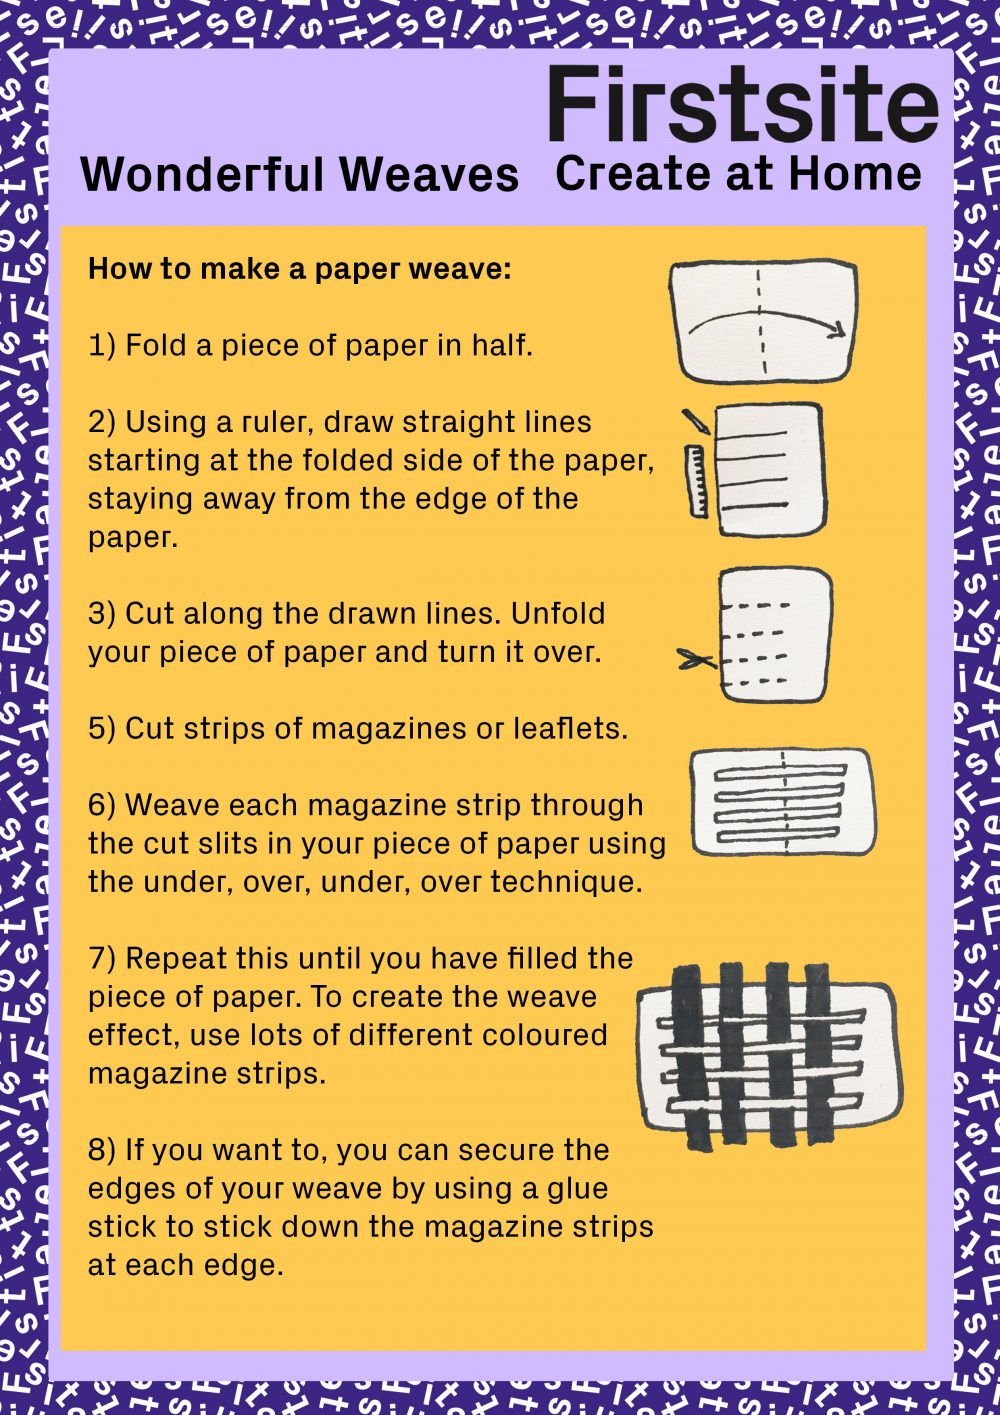 instructions on how to make a paper weave